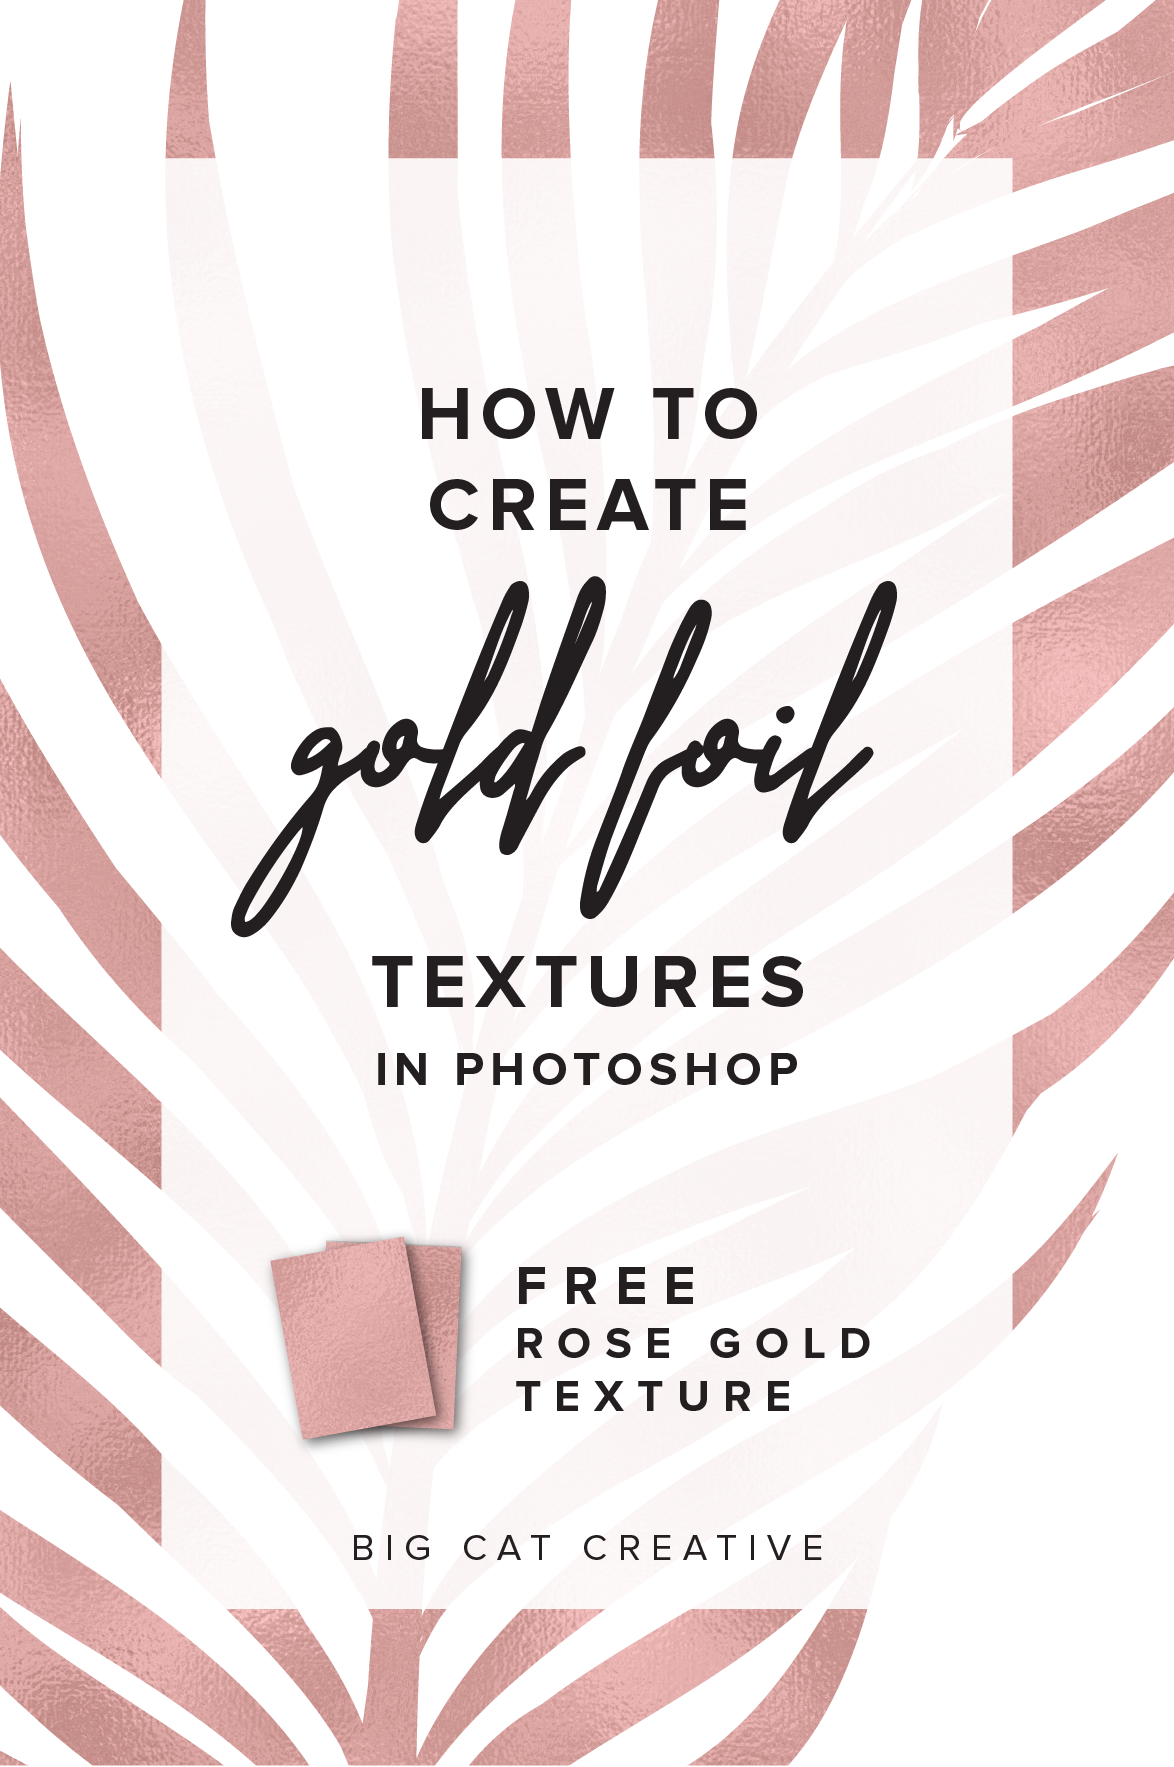 How to create a gold foil texture in photoshop photoshop ideas adobe photoshop baditri Images